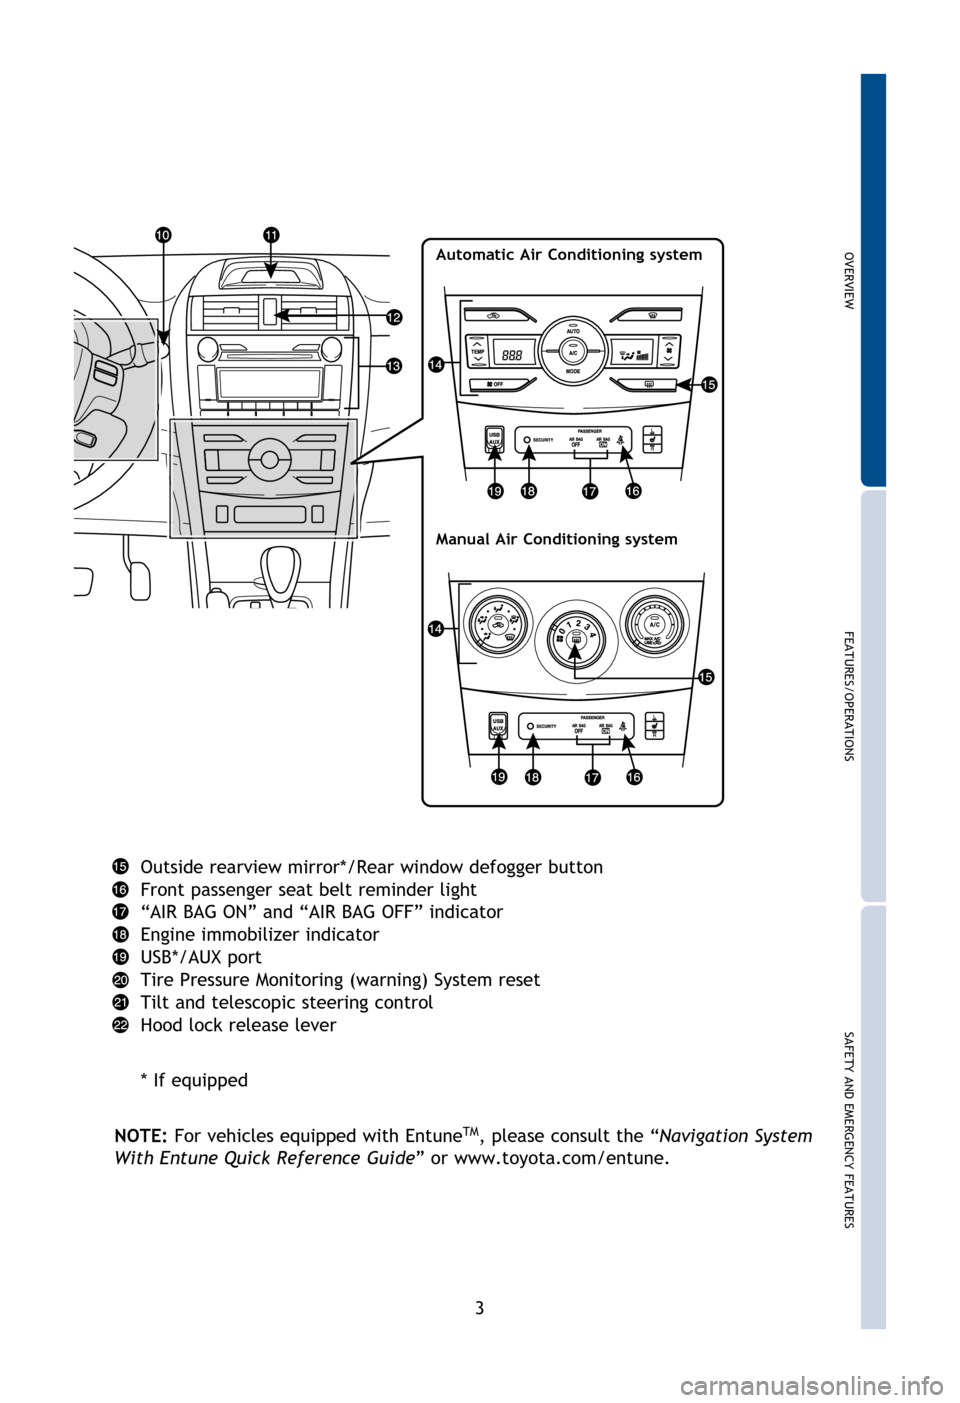 Toyota Corolla 2013 11g Quick Reference Guide Engine Dash Light Diagram Page 5